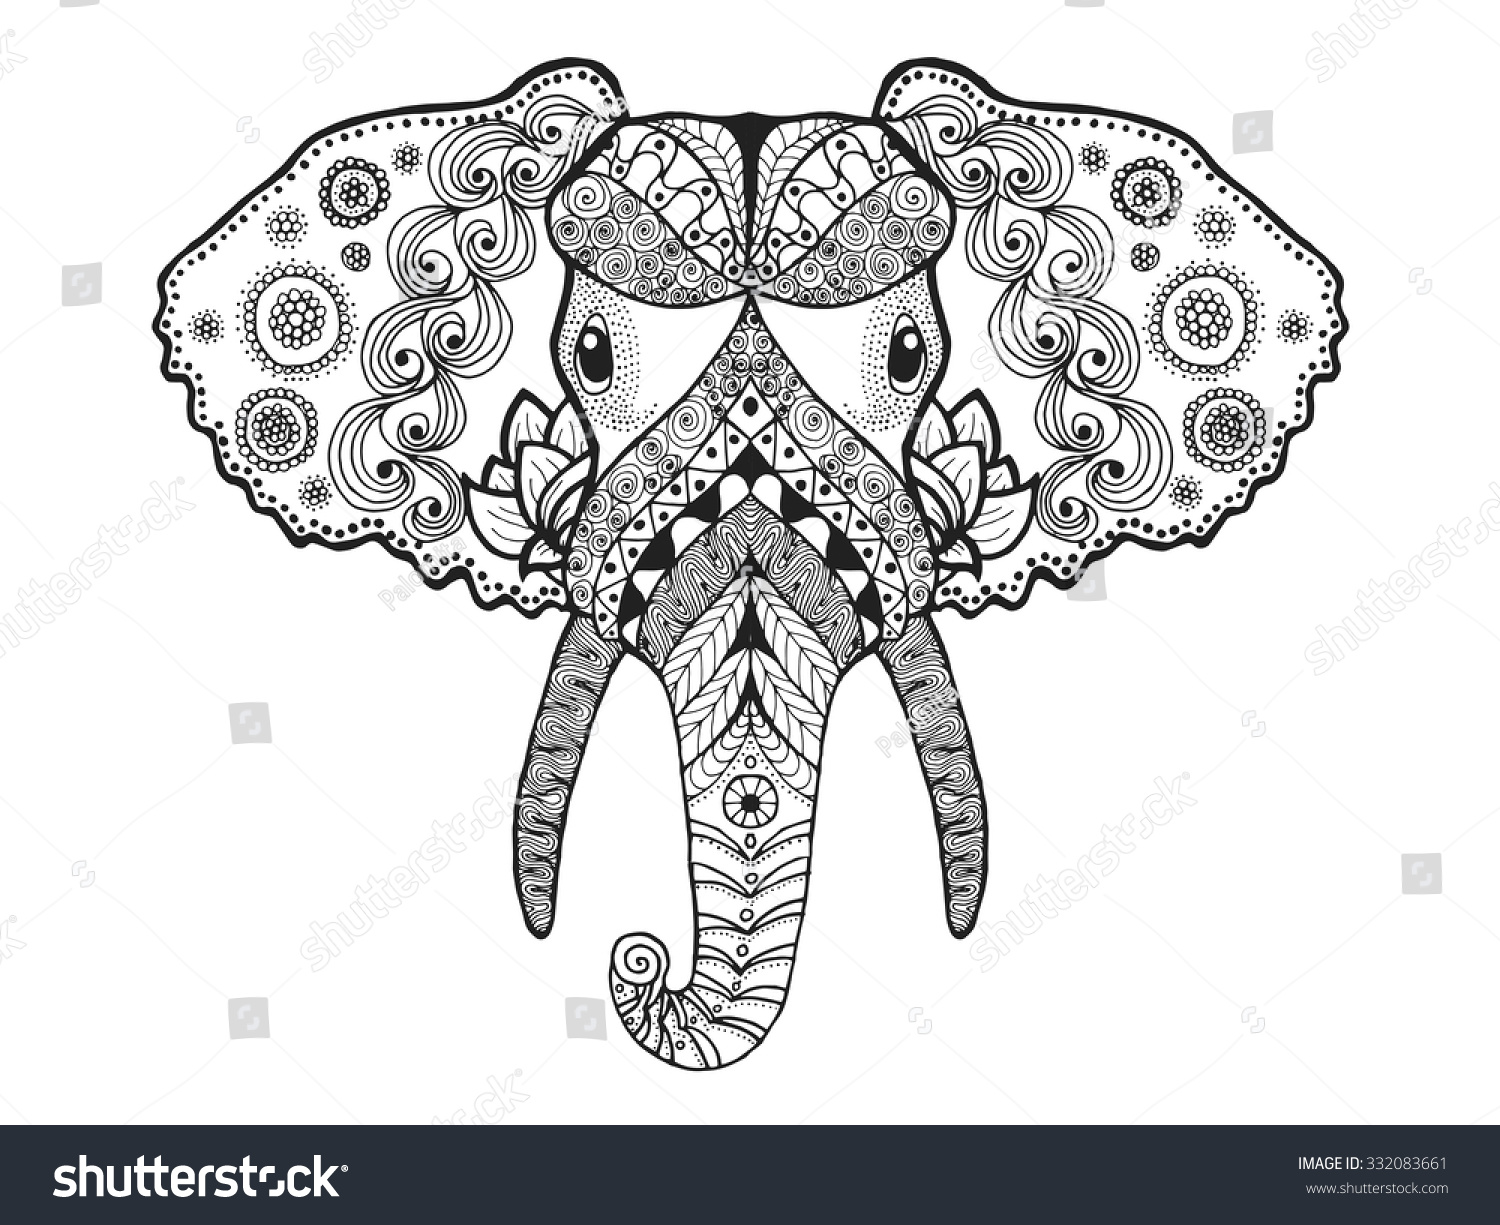 tribal animal coloring pages - photo#35